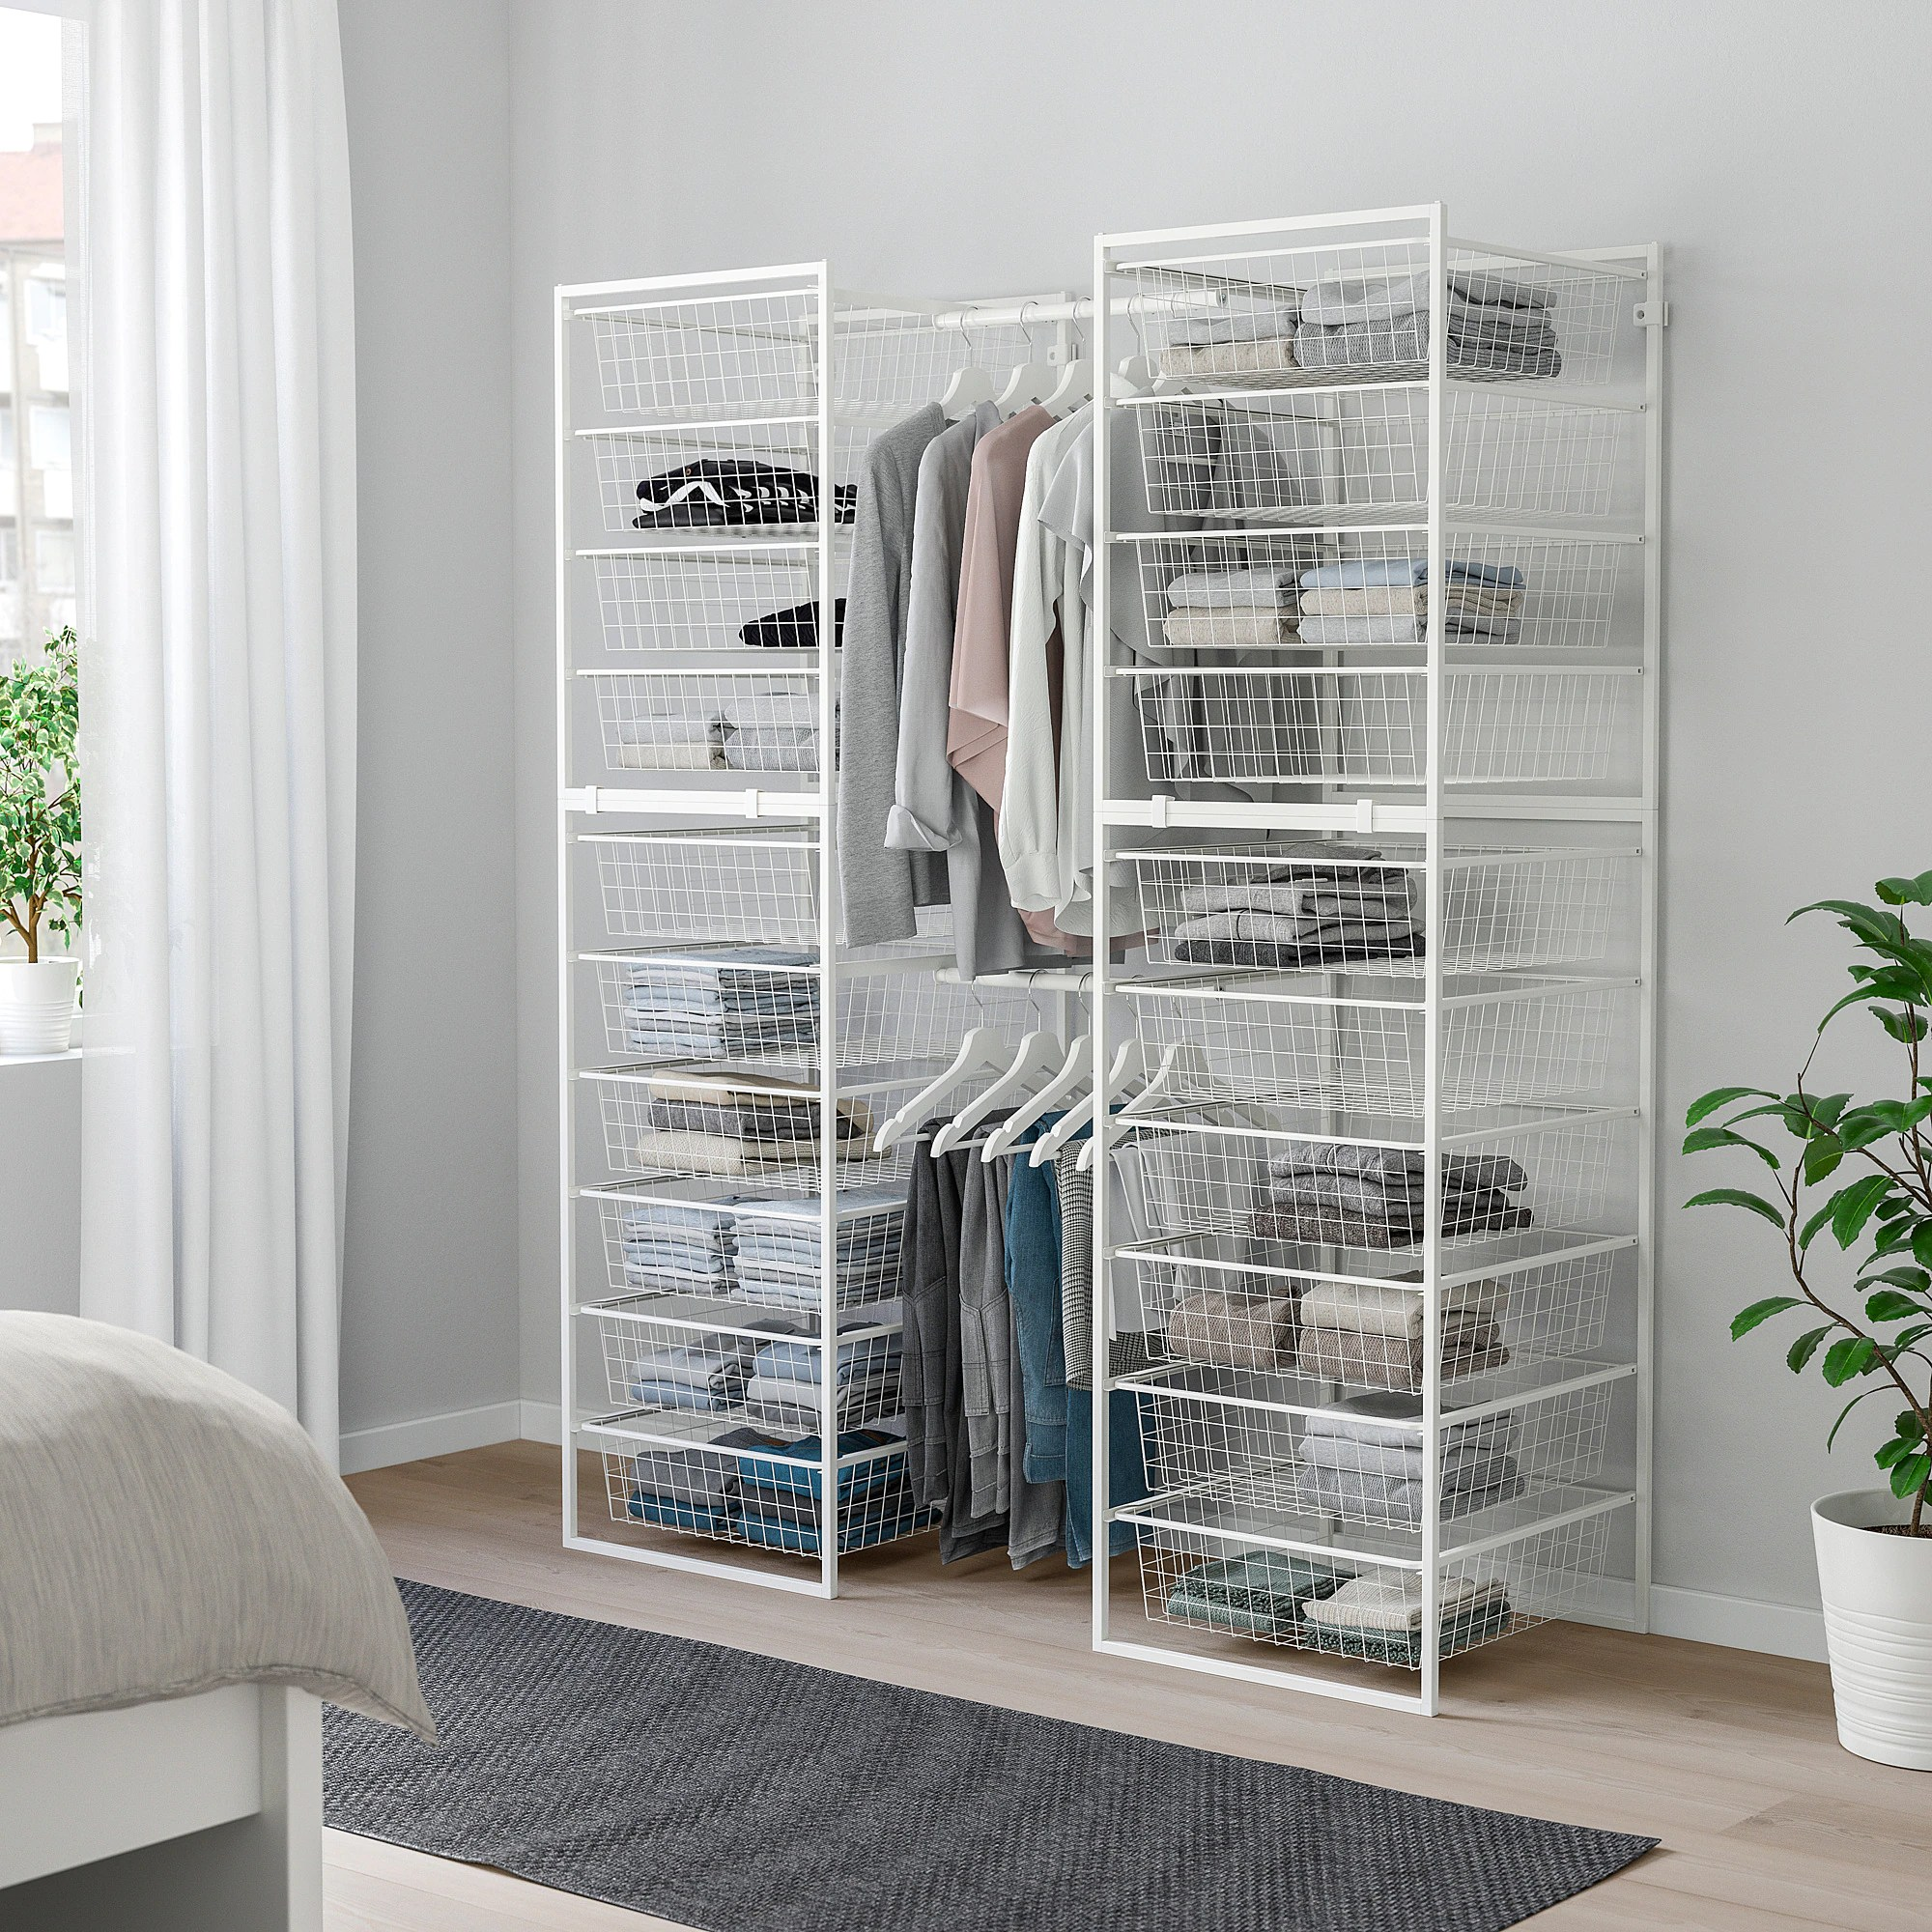 Ikea Wardrobe Tidy Jonaxel Frame Wire Baskets Clothes Rails